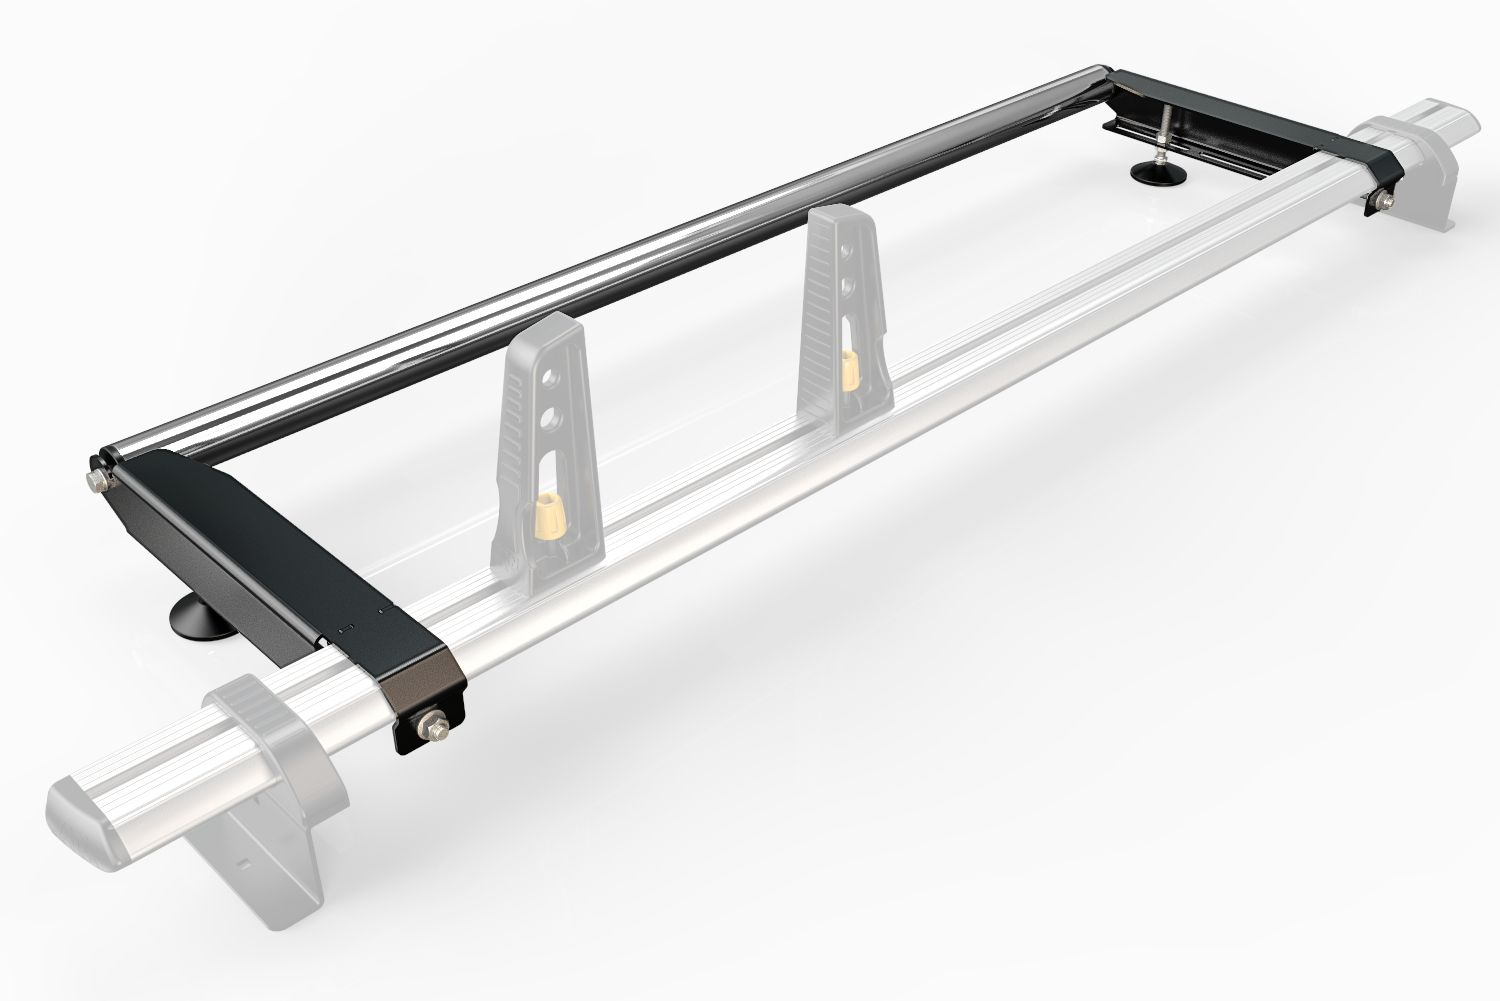 Van Demon Rhino Delta 3 Bar Heavy Duty Roof Rack with 4 Free Load Stops for VW Transporter T6 2015 on